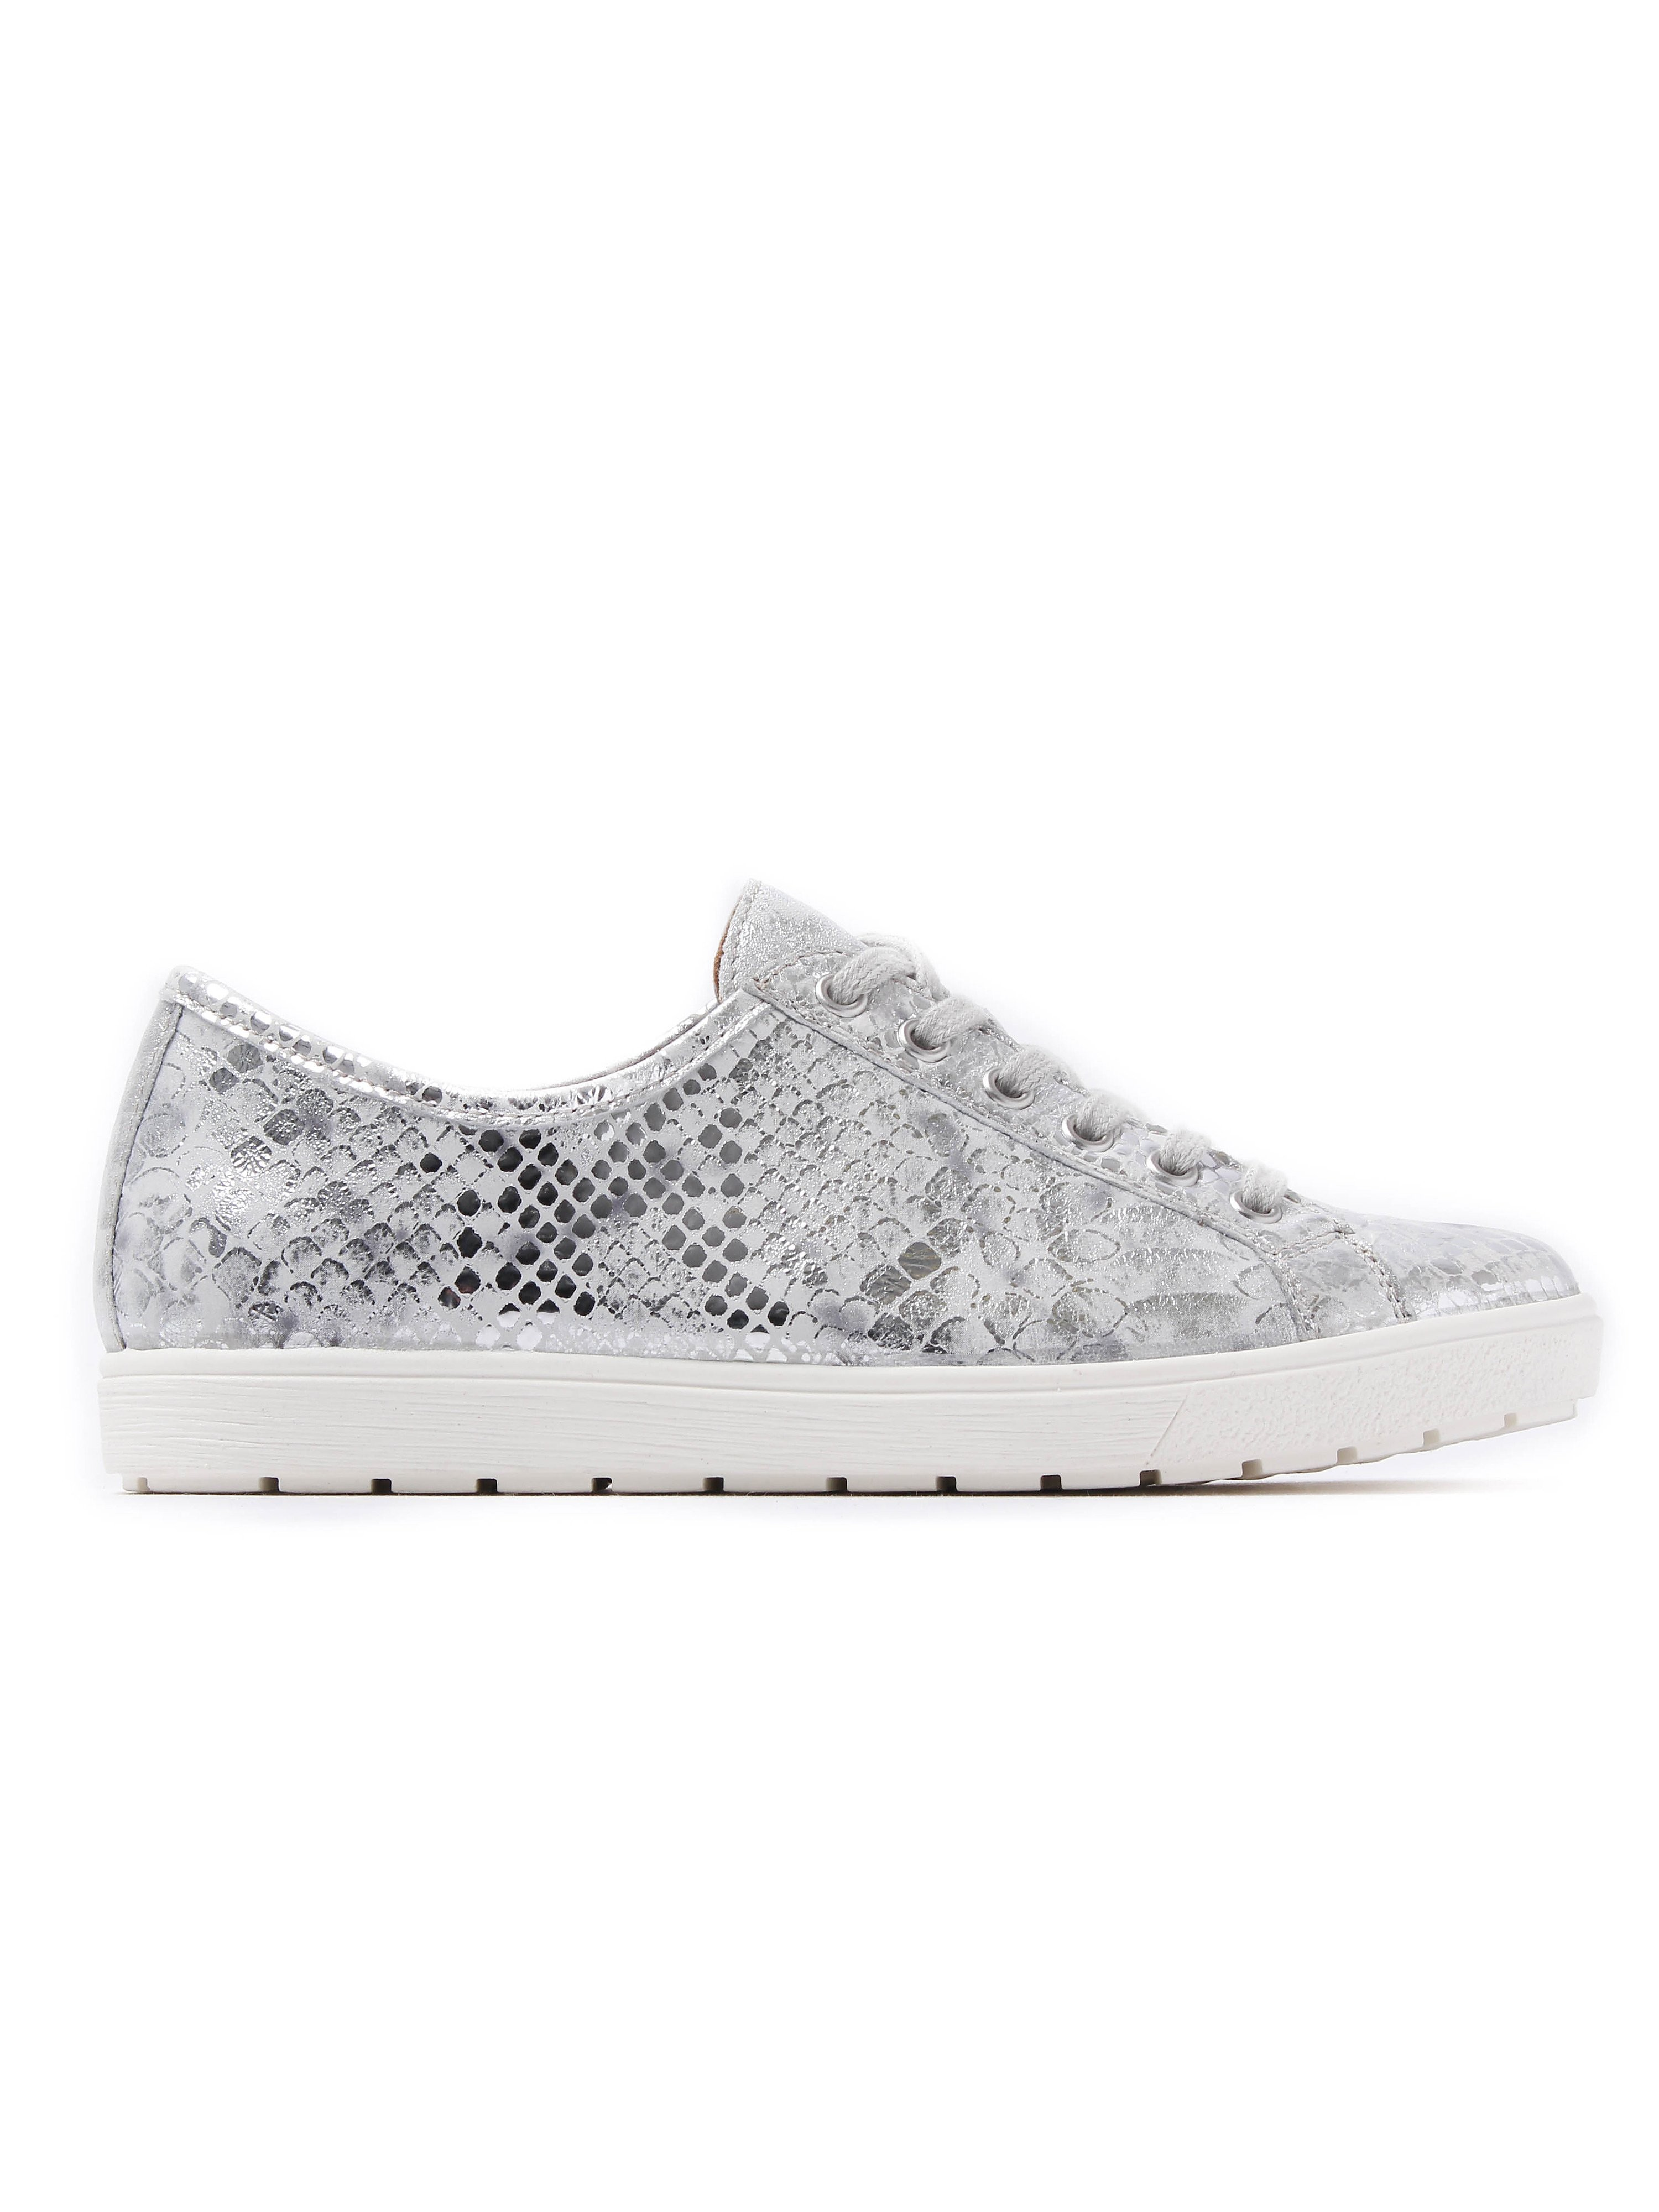 Caprice Women's Snake Effect Leather Trainers - Silver Metallic